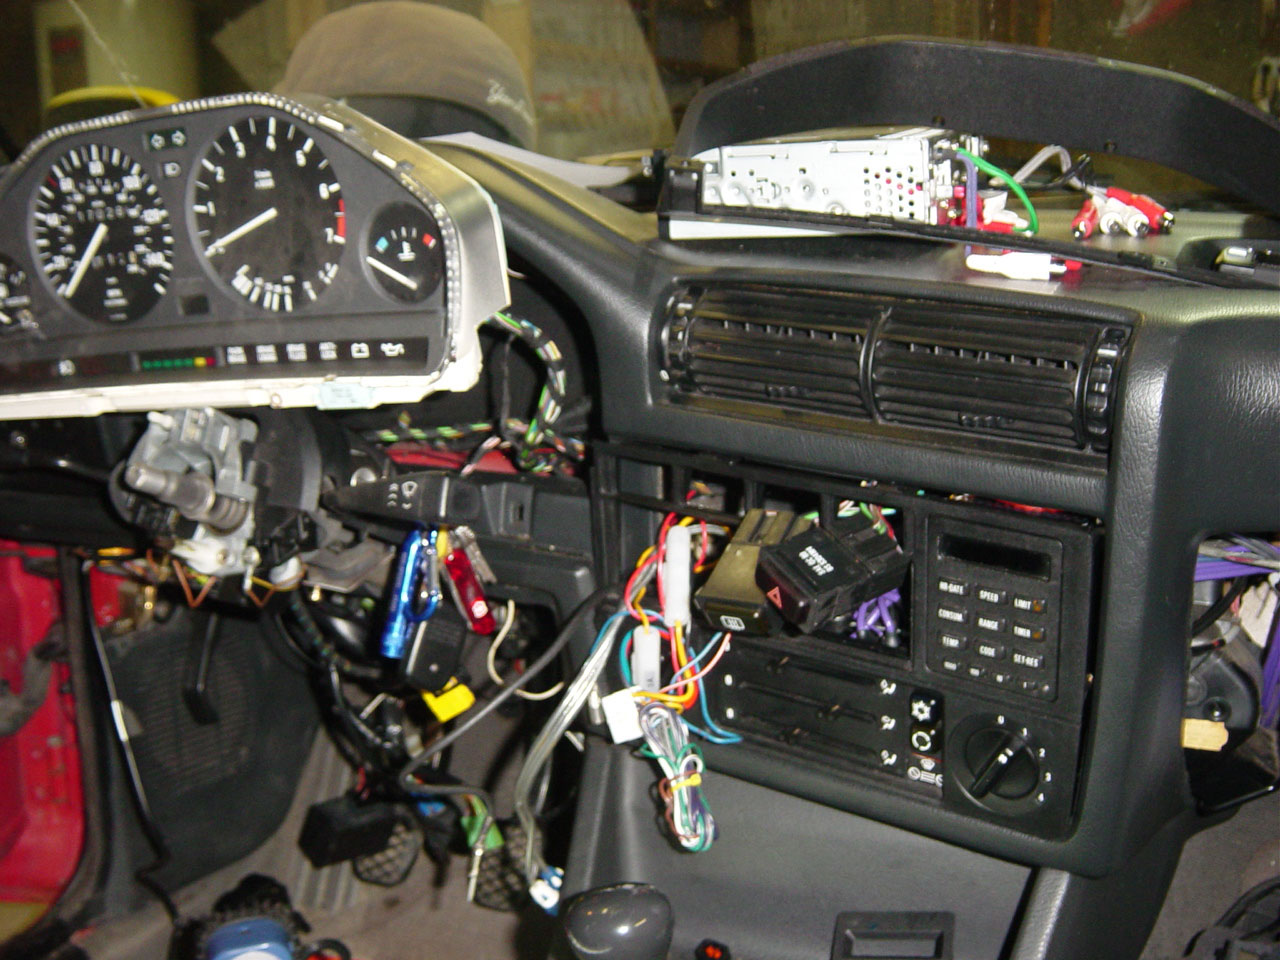 1991 Bmw 318i E30 M42 On Board Computer Obc Retrofit By Michael Wiring Alarm Pincott